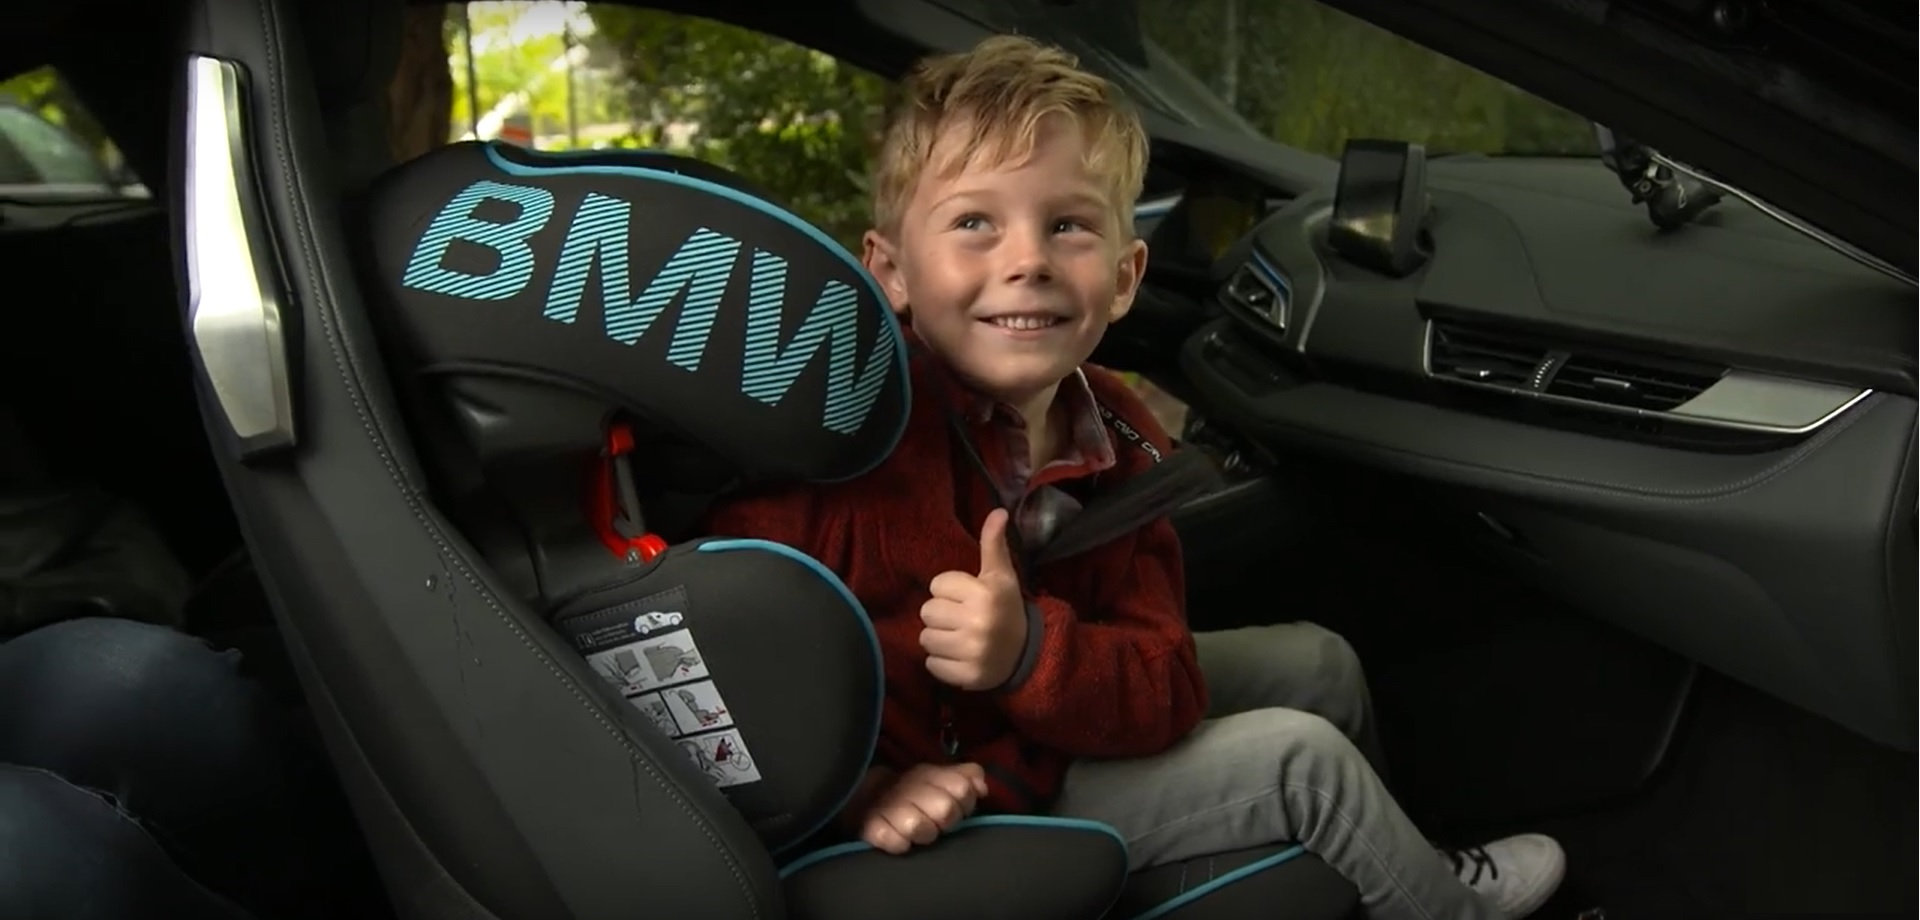 5-Year-Old Fan Gets a Big Surprise from BMW